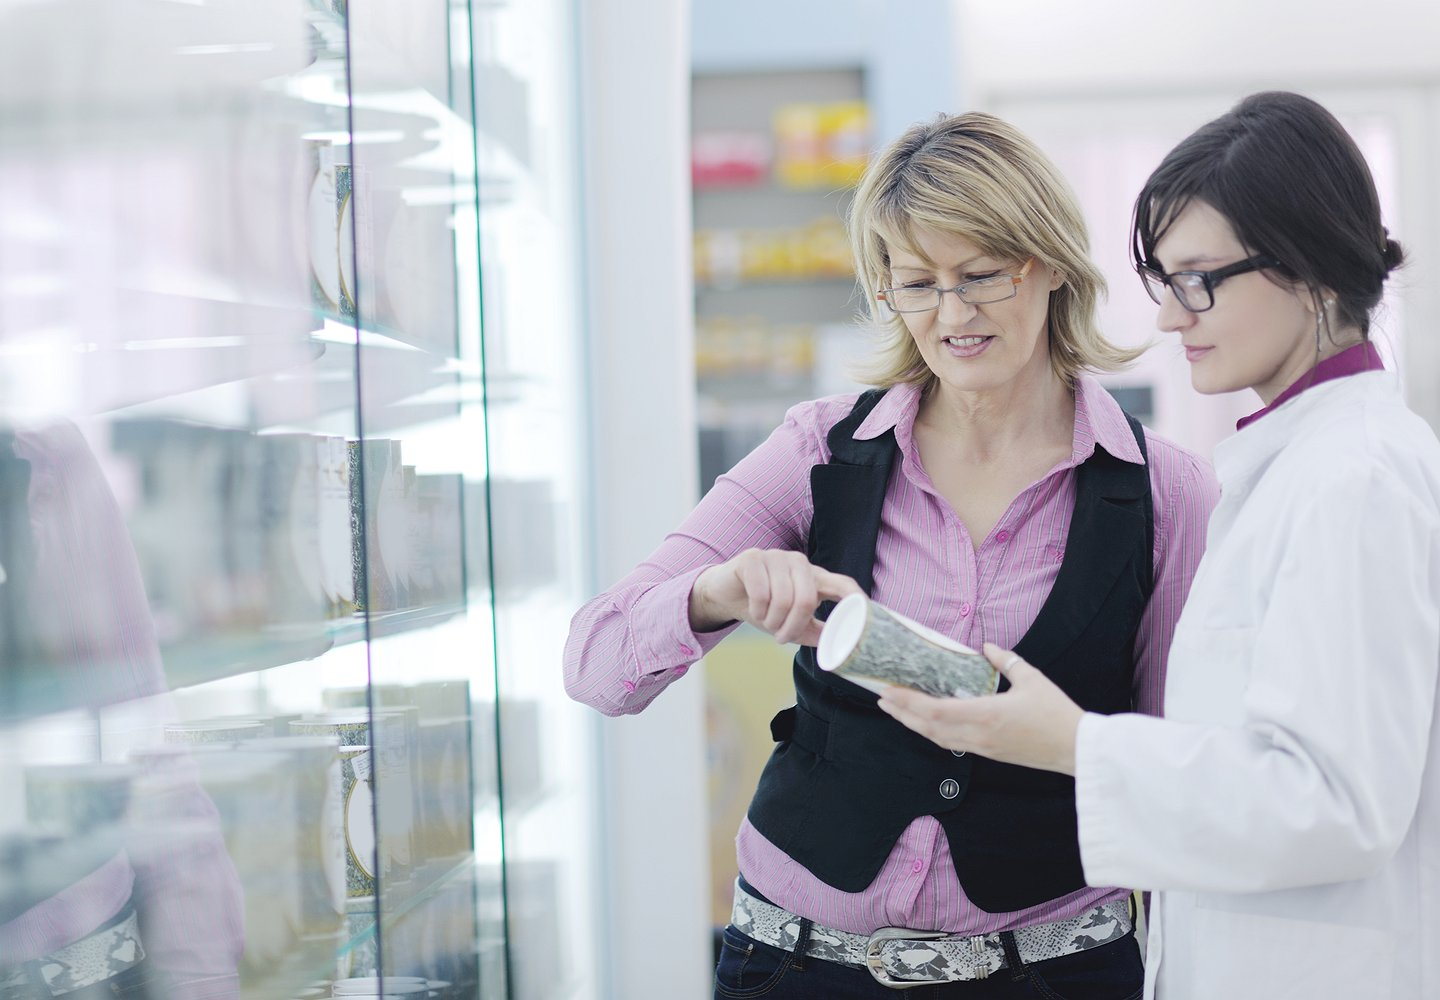 DTC Advertising: Finding the Right Prescription